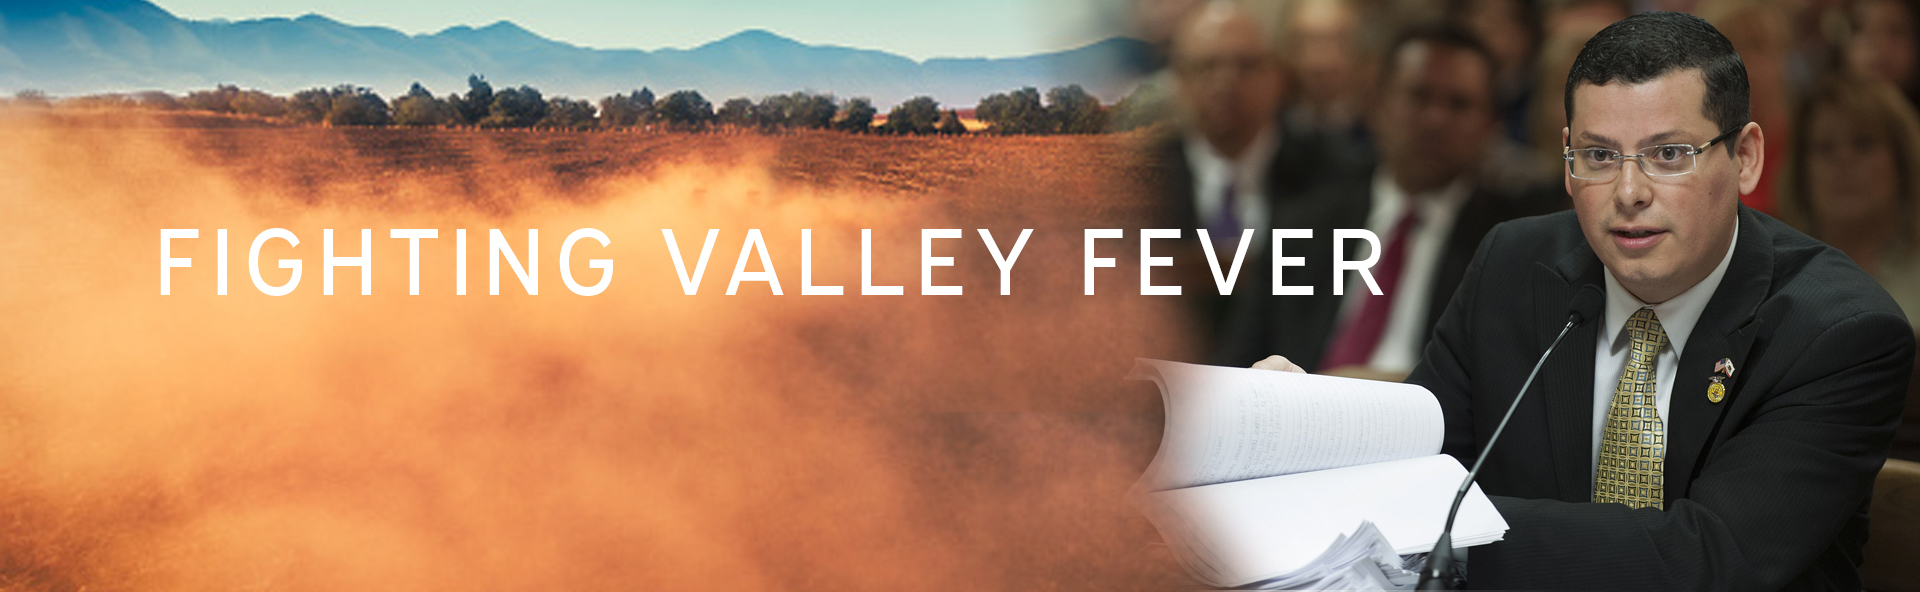 Fighting Valley Fever